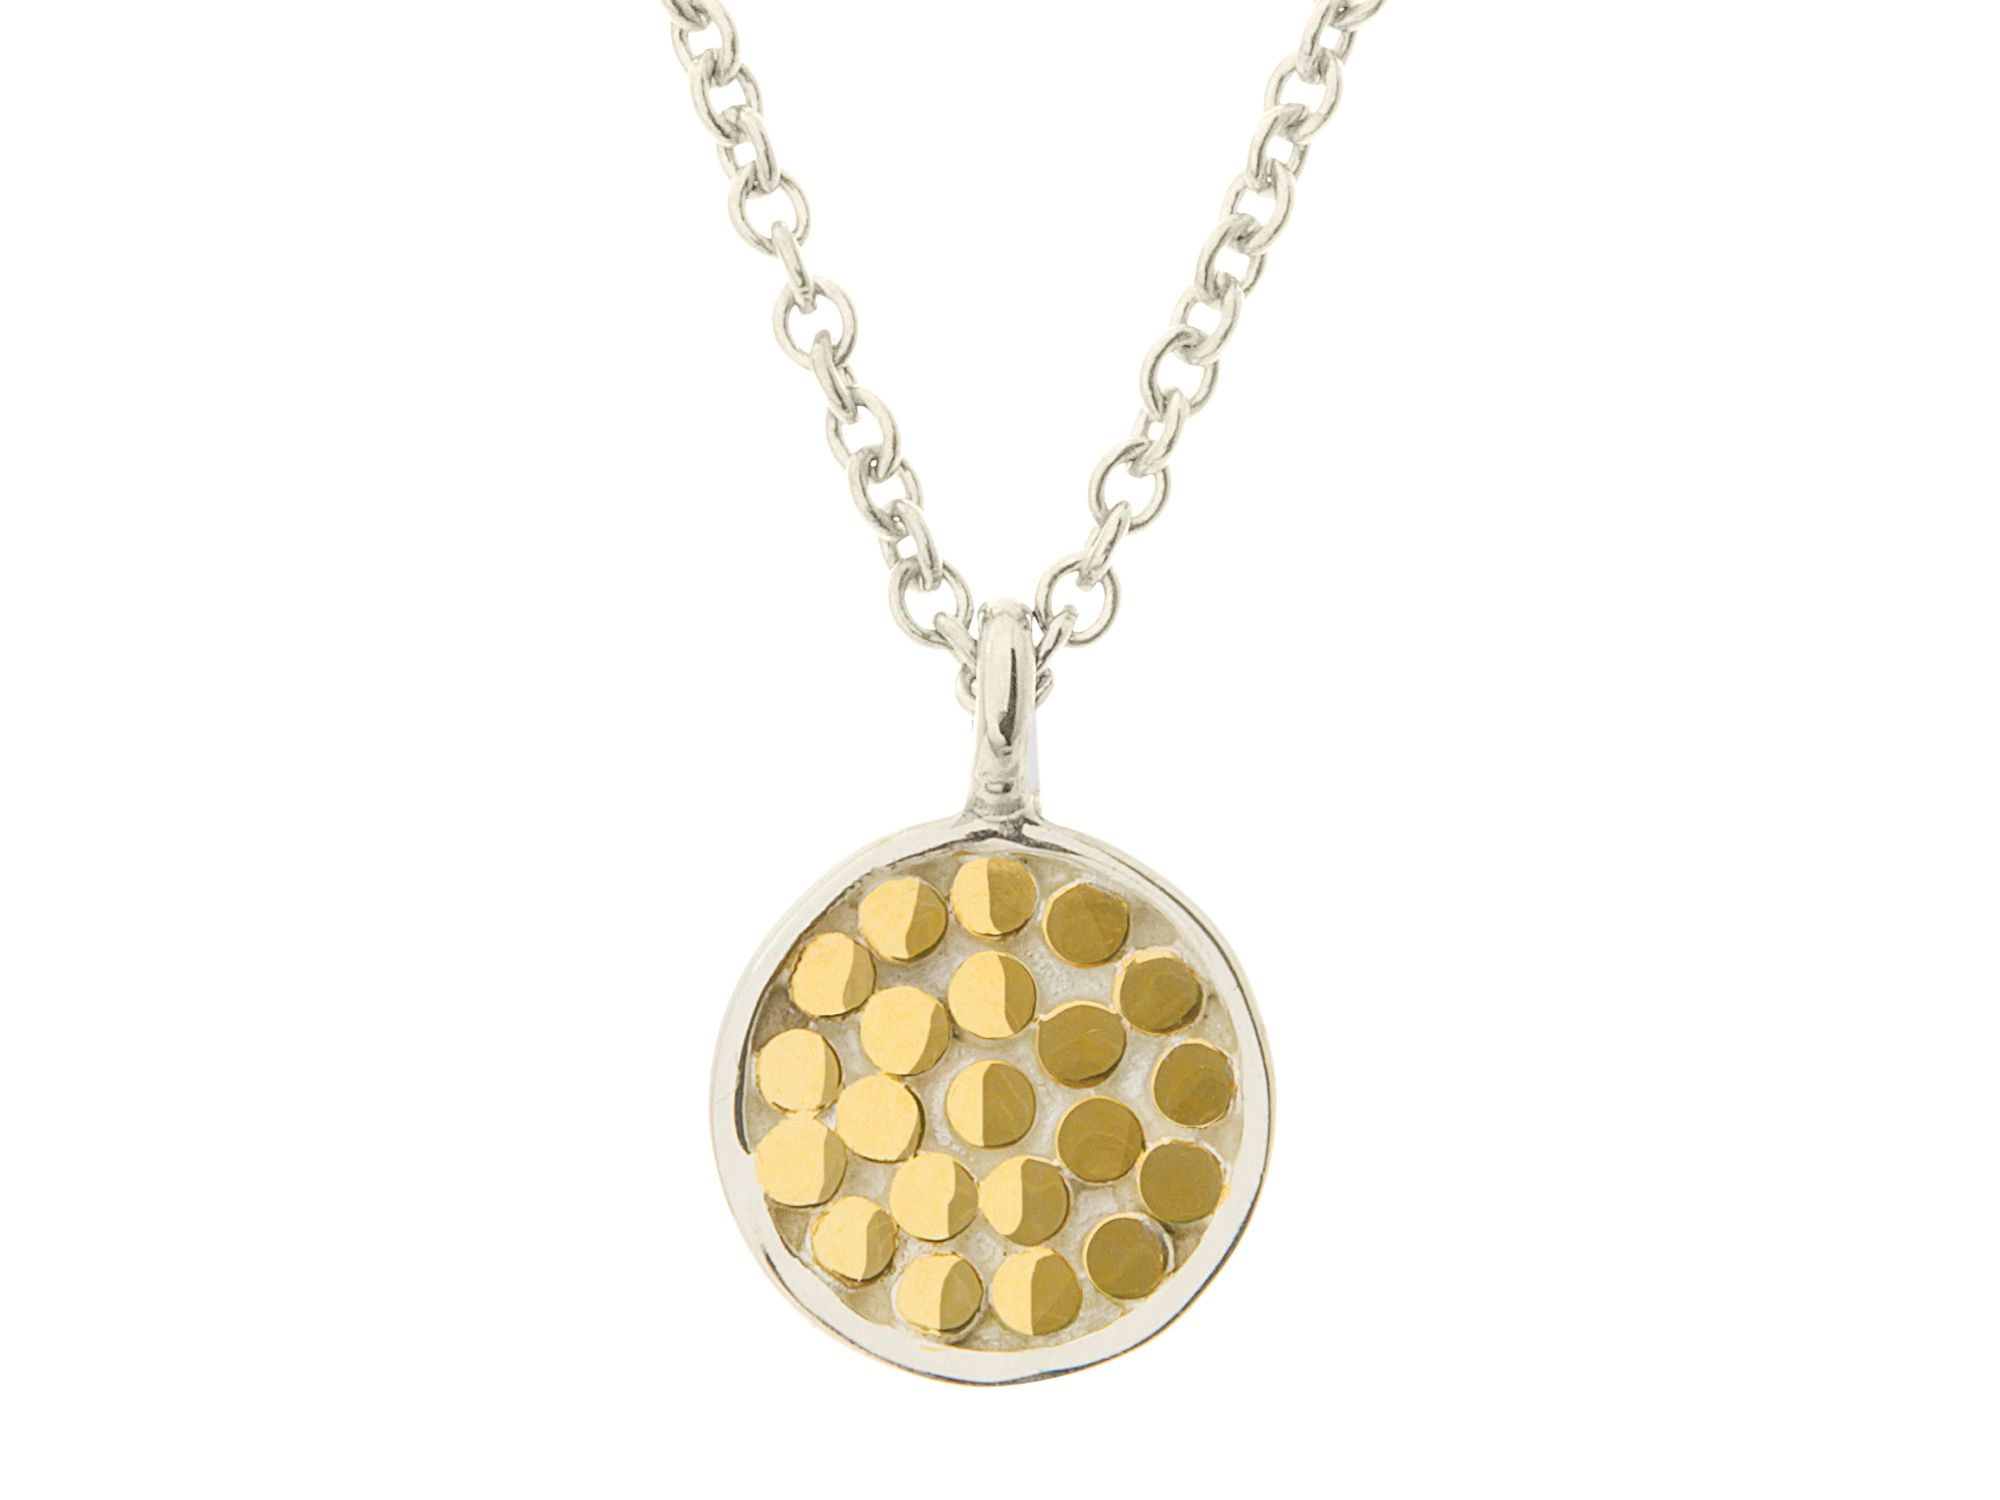 Anna beck textured disk pendant necklace 16 in metallic lyst gallery aloadofball Images